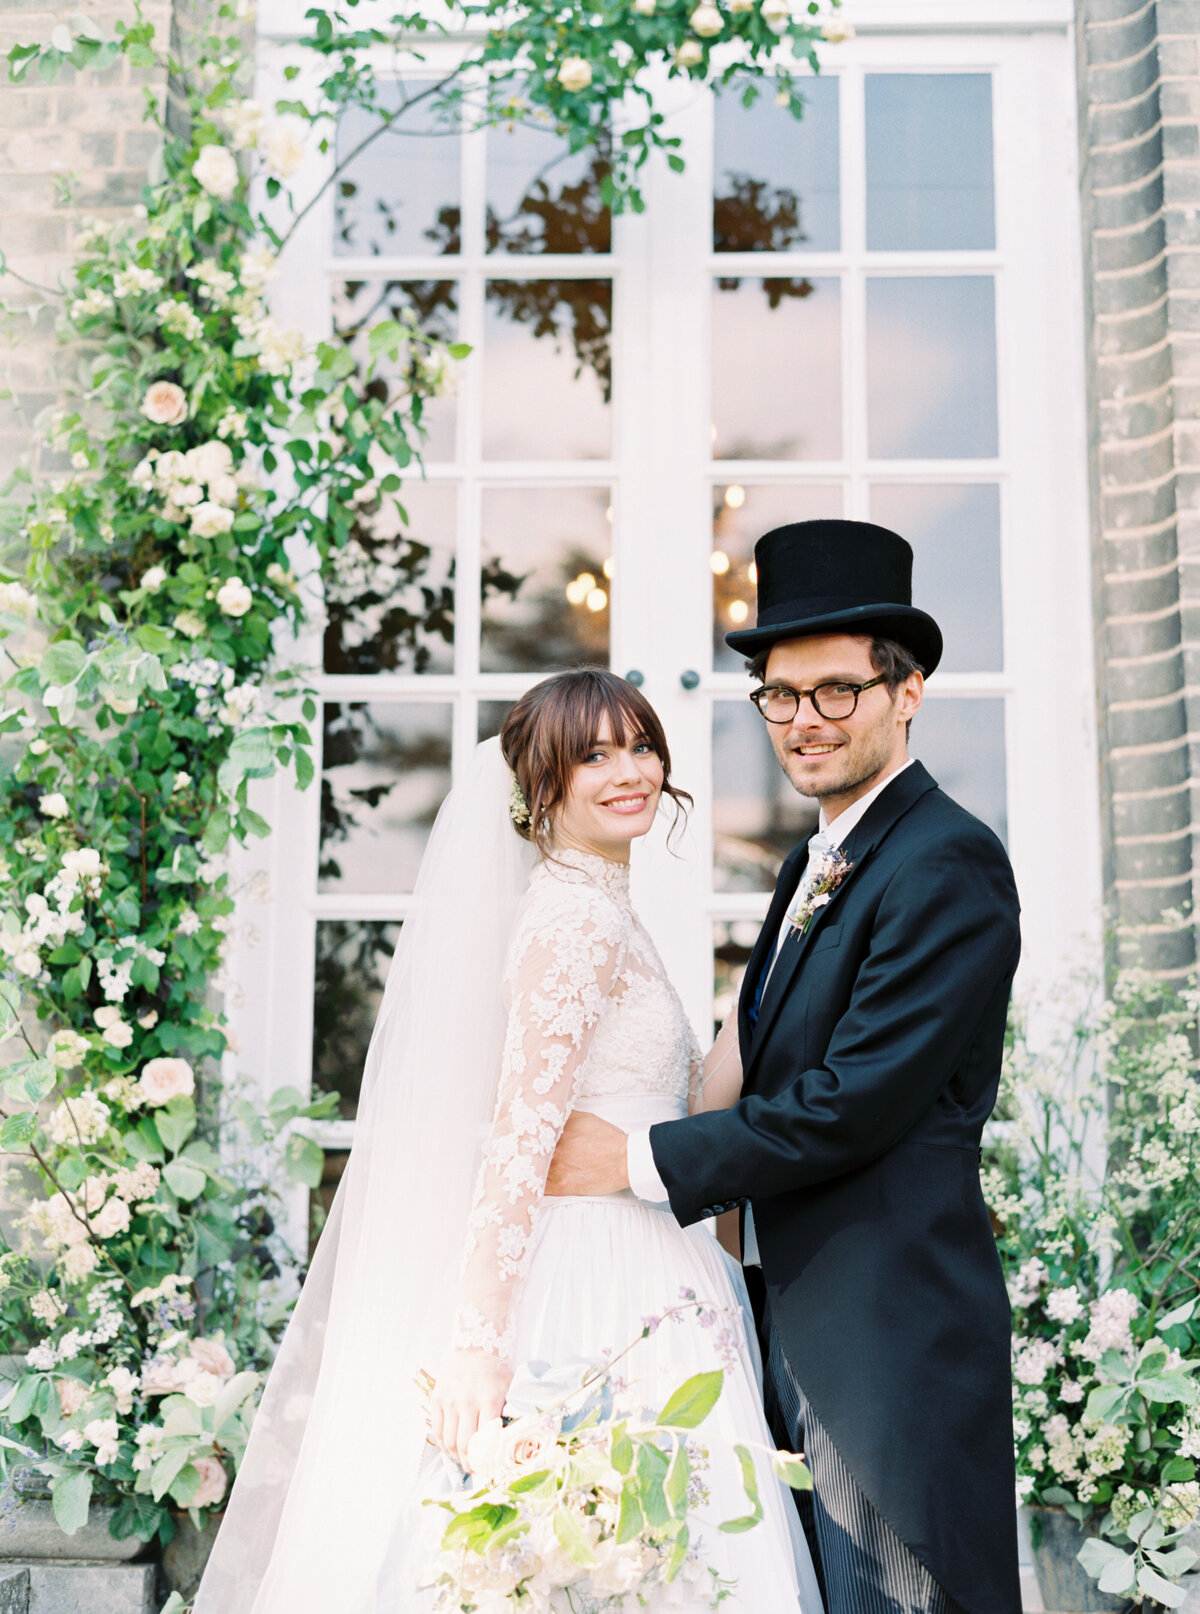 TiffaneyChildsPhotography-LondonWeddingPhotographer-Julieta+Cedrick-HedsorHouseWedding-230